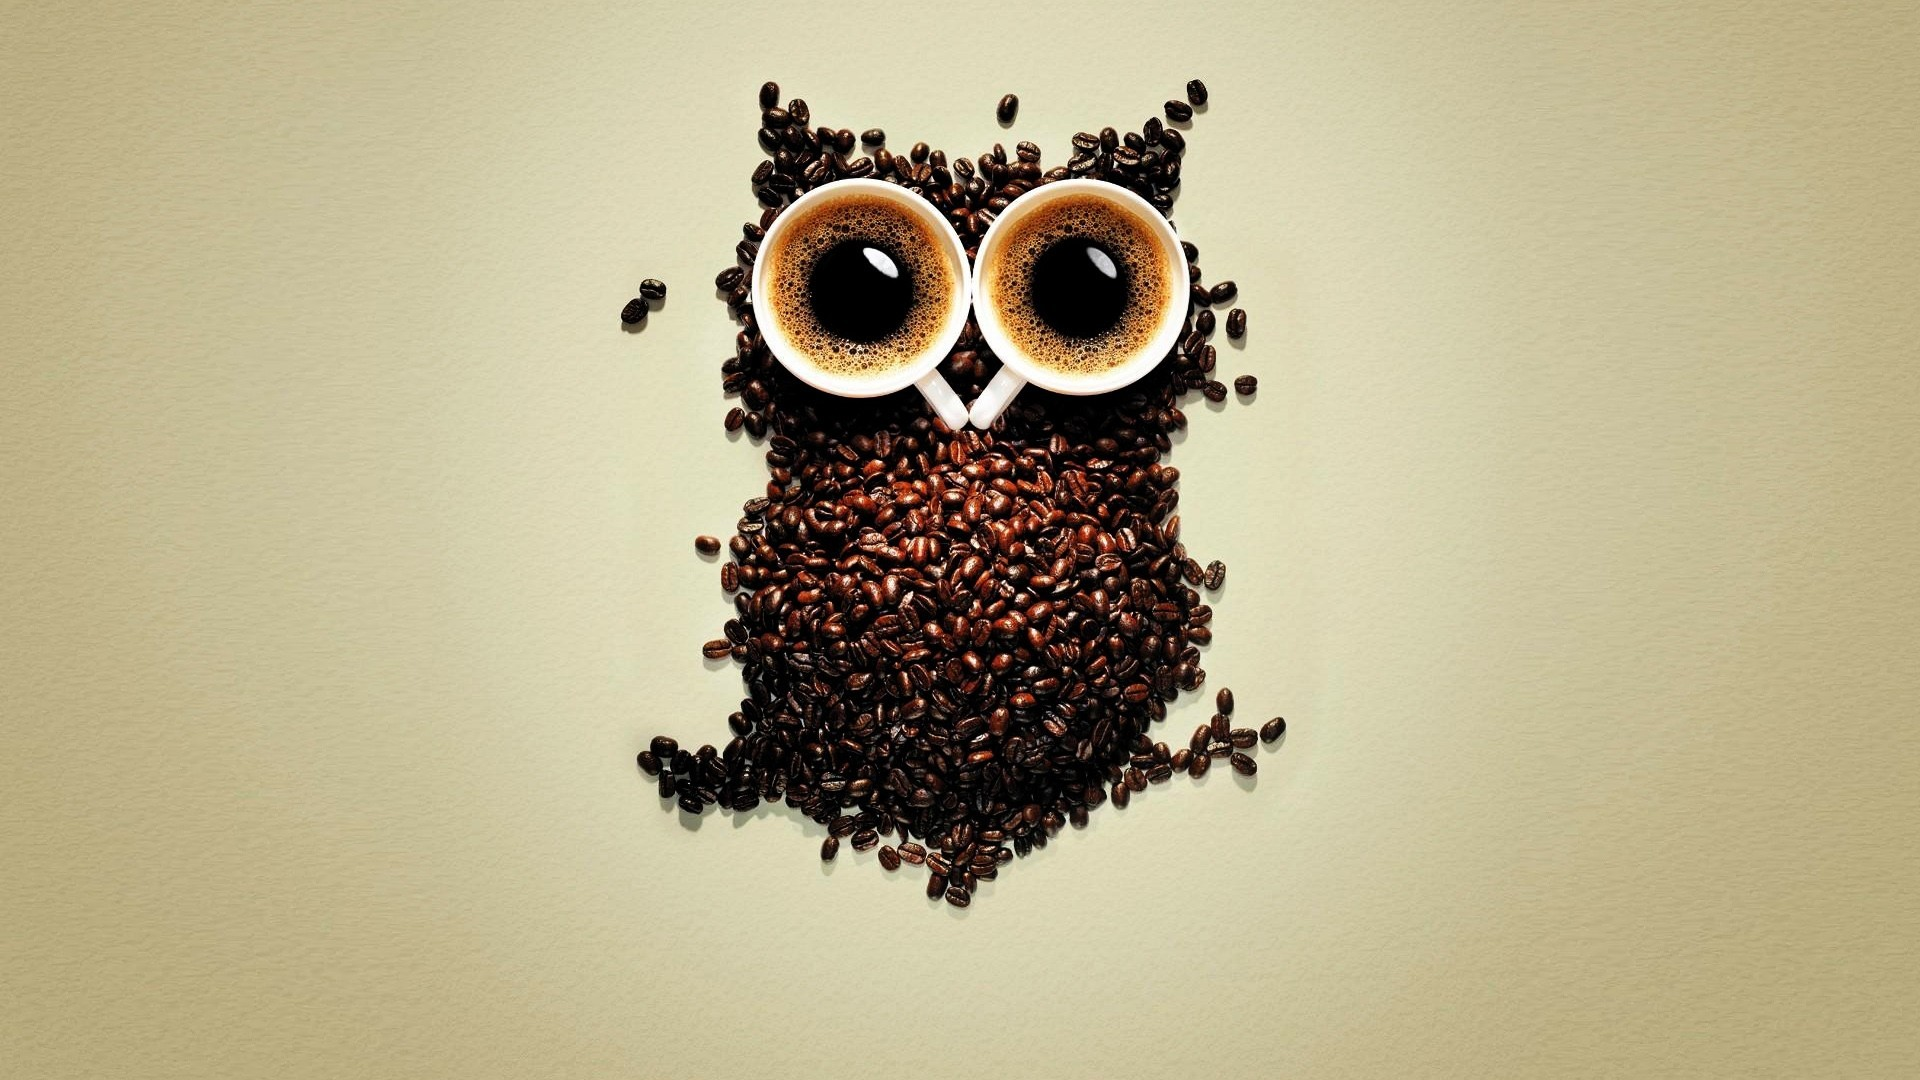 Good Coffee Beans Owl Art